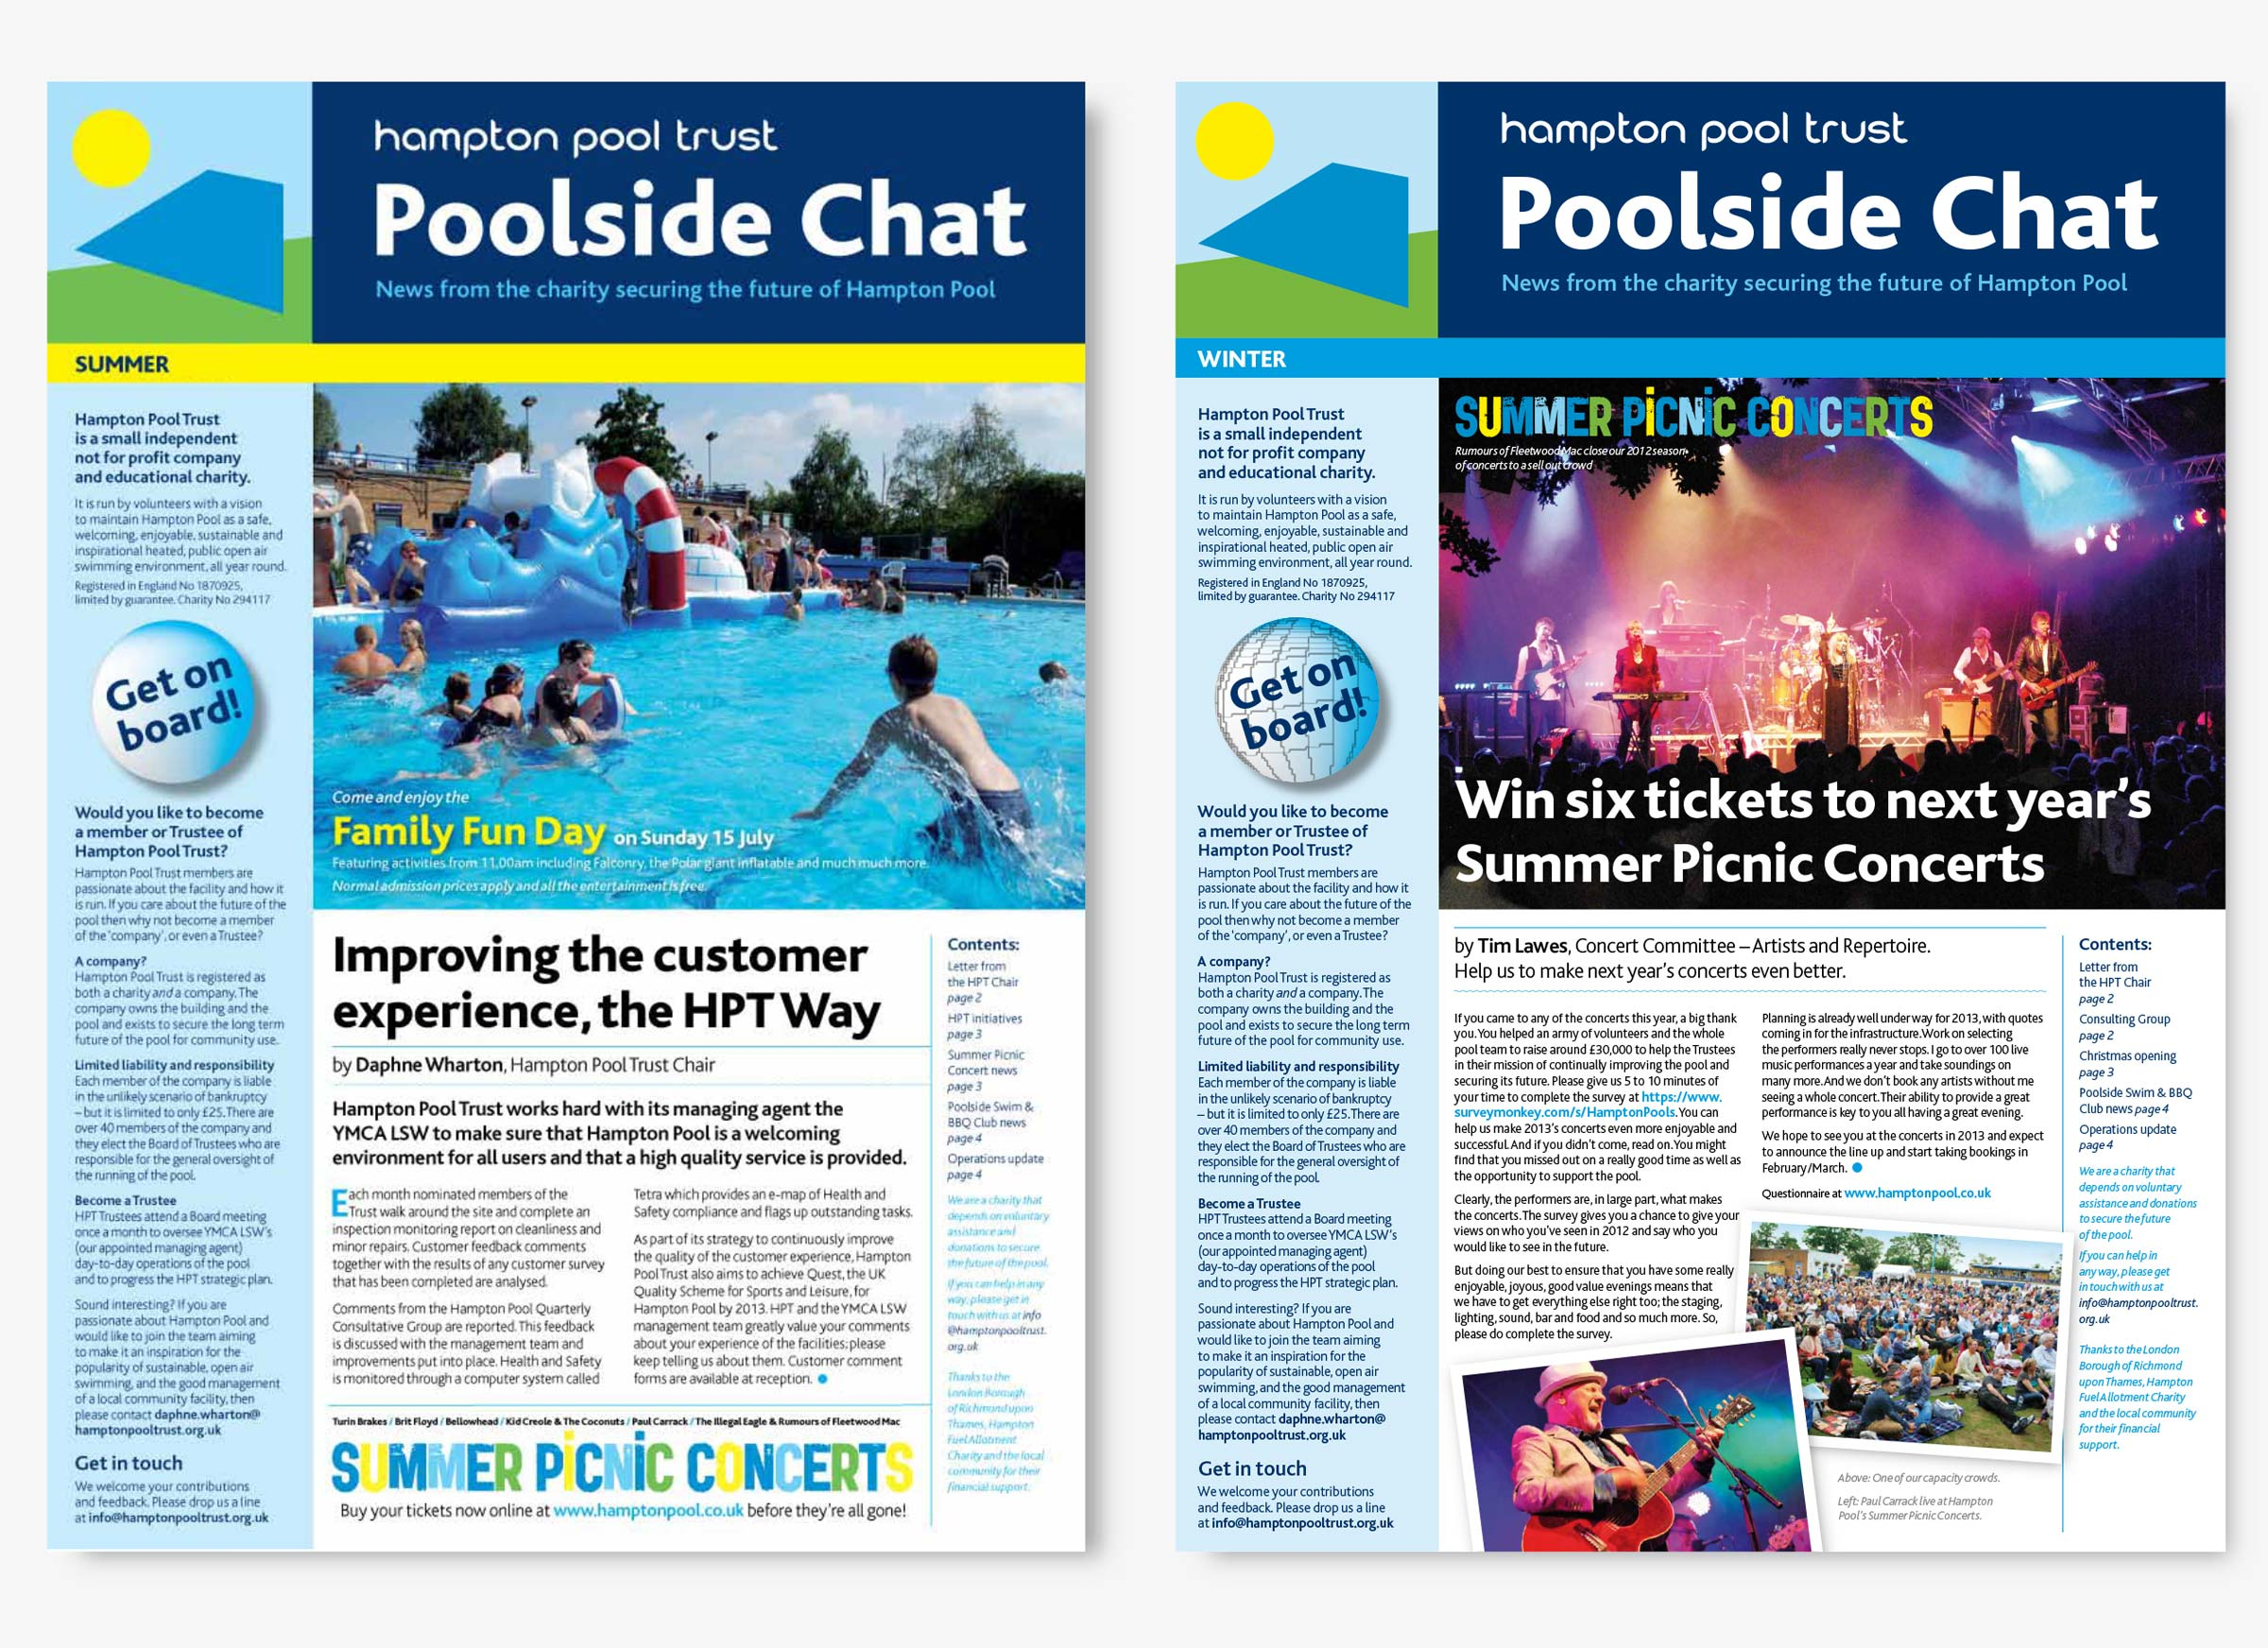 Hampton Pool Trust Poolside Chat newsletter